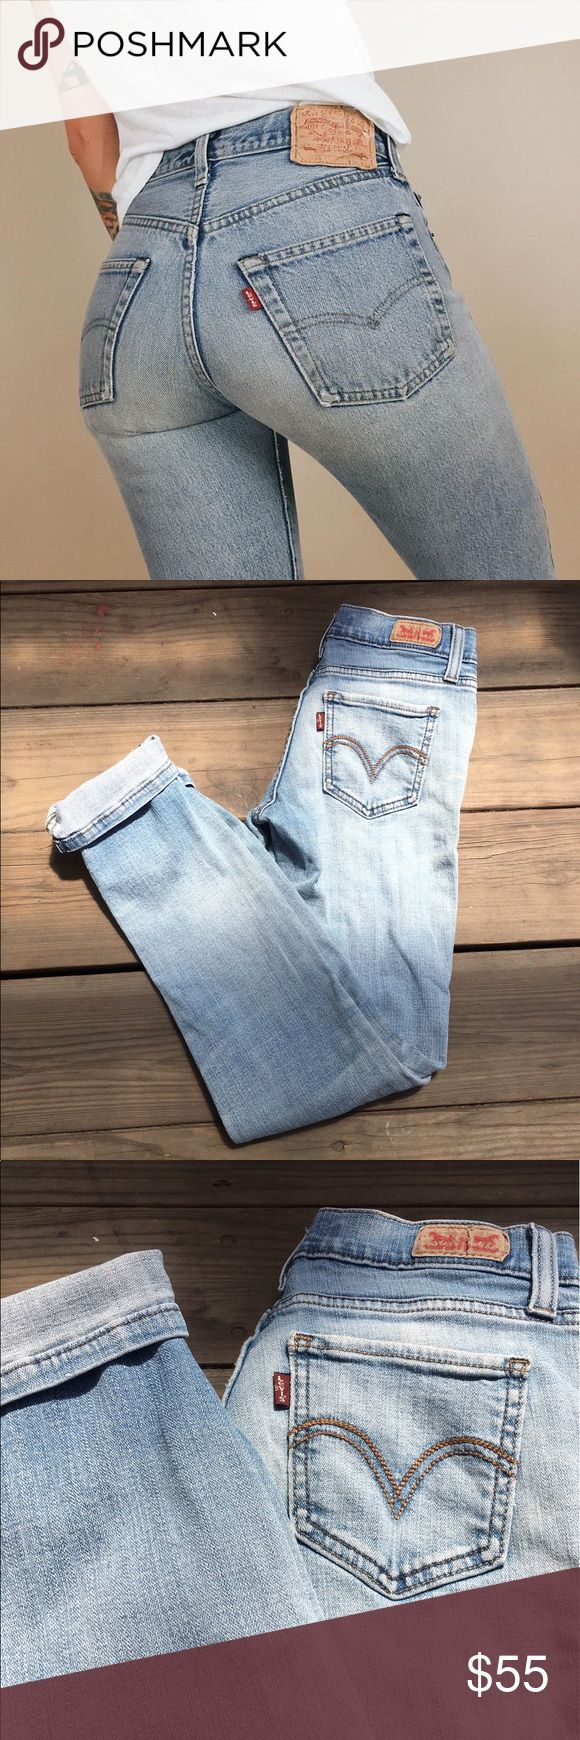 Levi Vintage Skinny Jeans W26 / 30L  flaws : NONE  offers: no lowballs (: Levi's Jeans Skinny